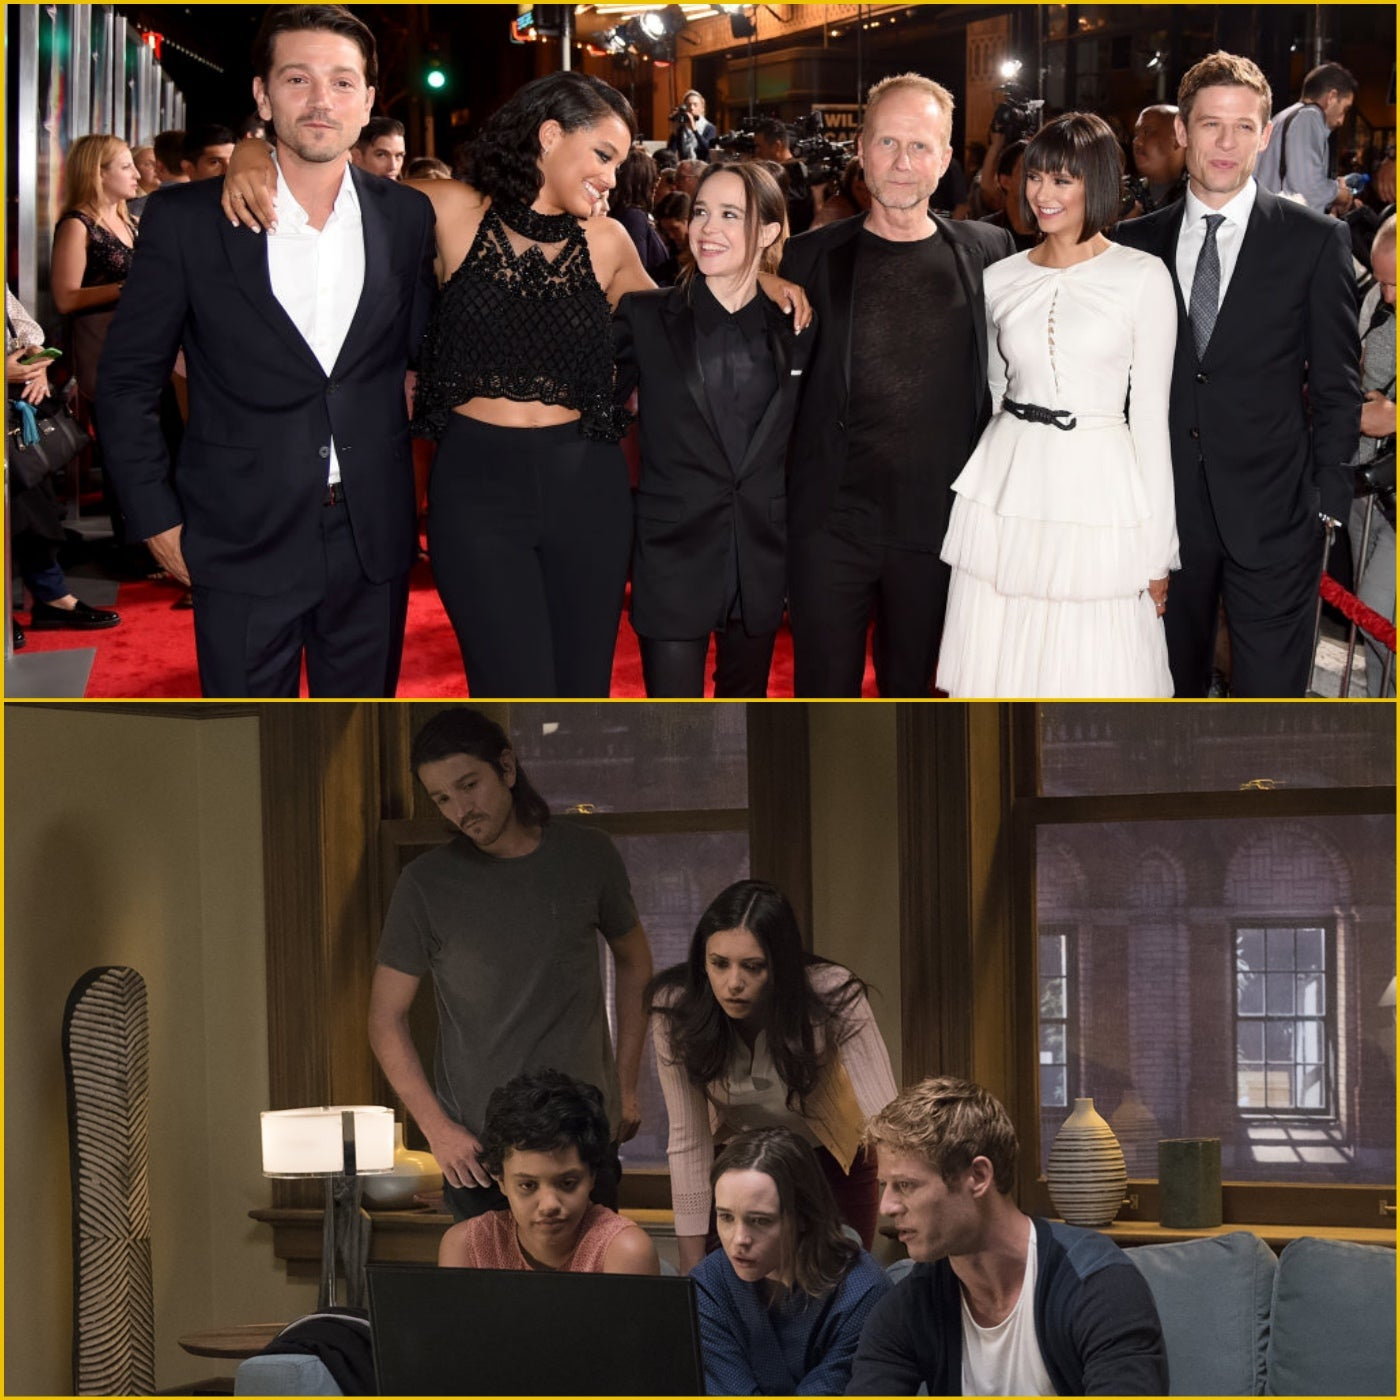 Director Niels Arden Oplev and the cast of Flatliners